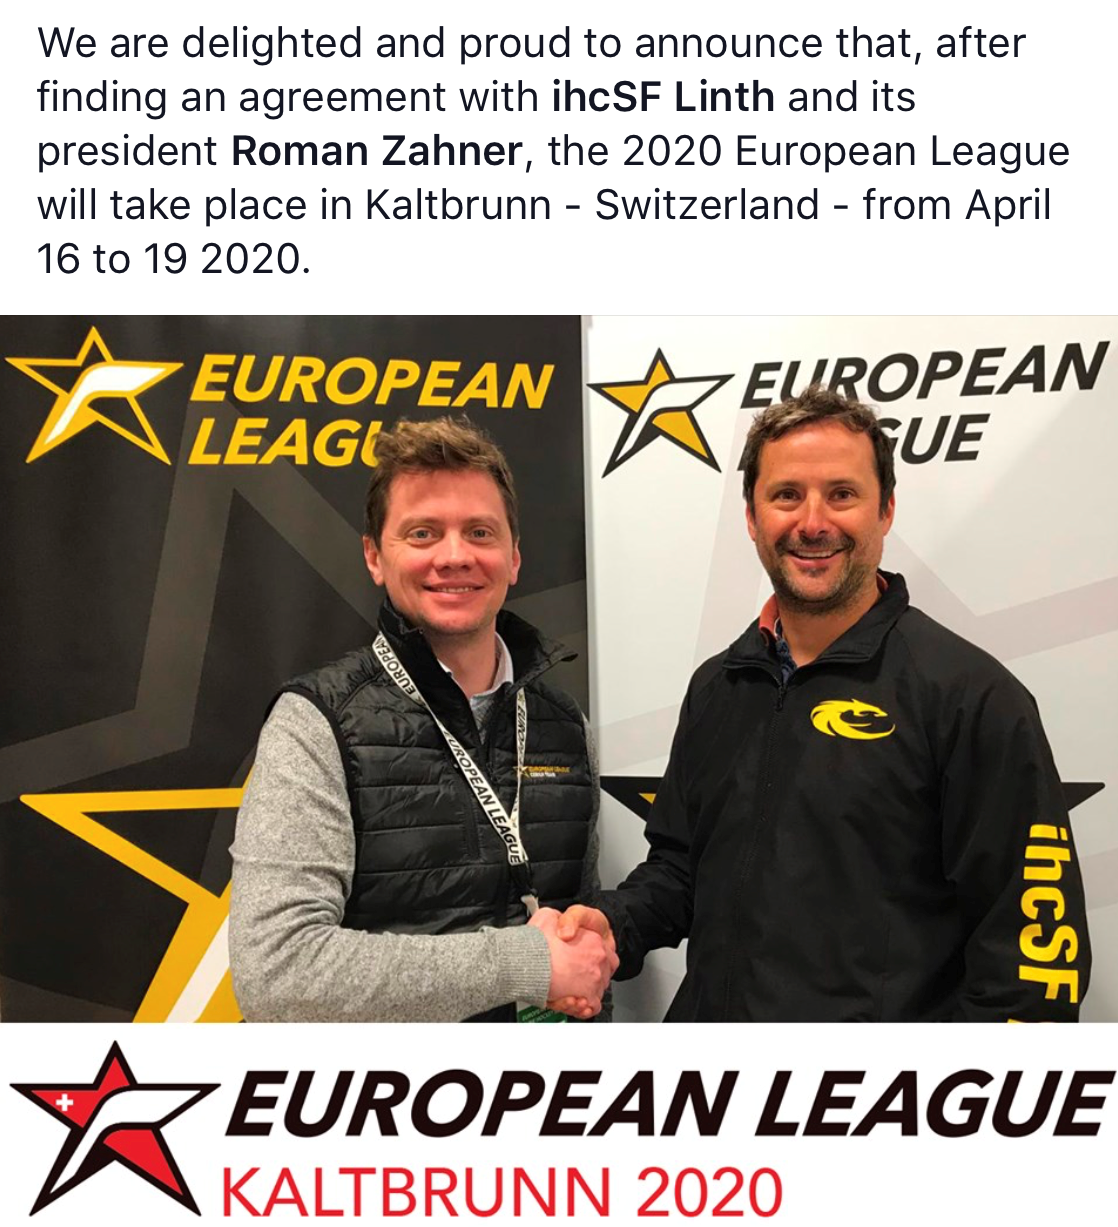 European League 2020 kommt nach Kaltbrunn